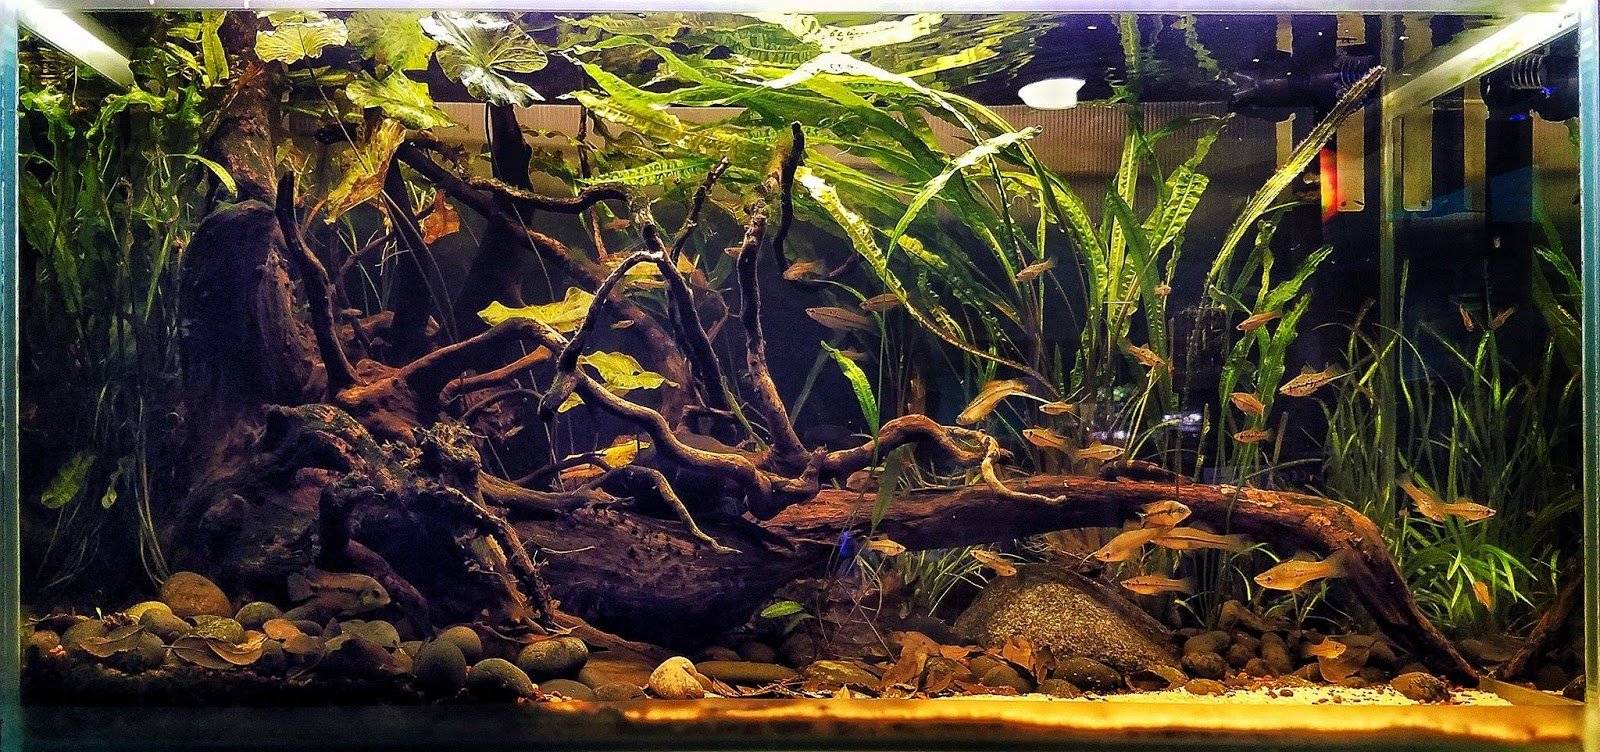 The biotope aquarium and the biotope style aquascaping